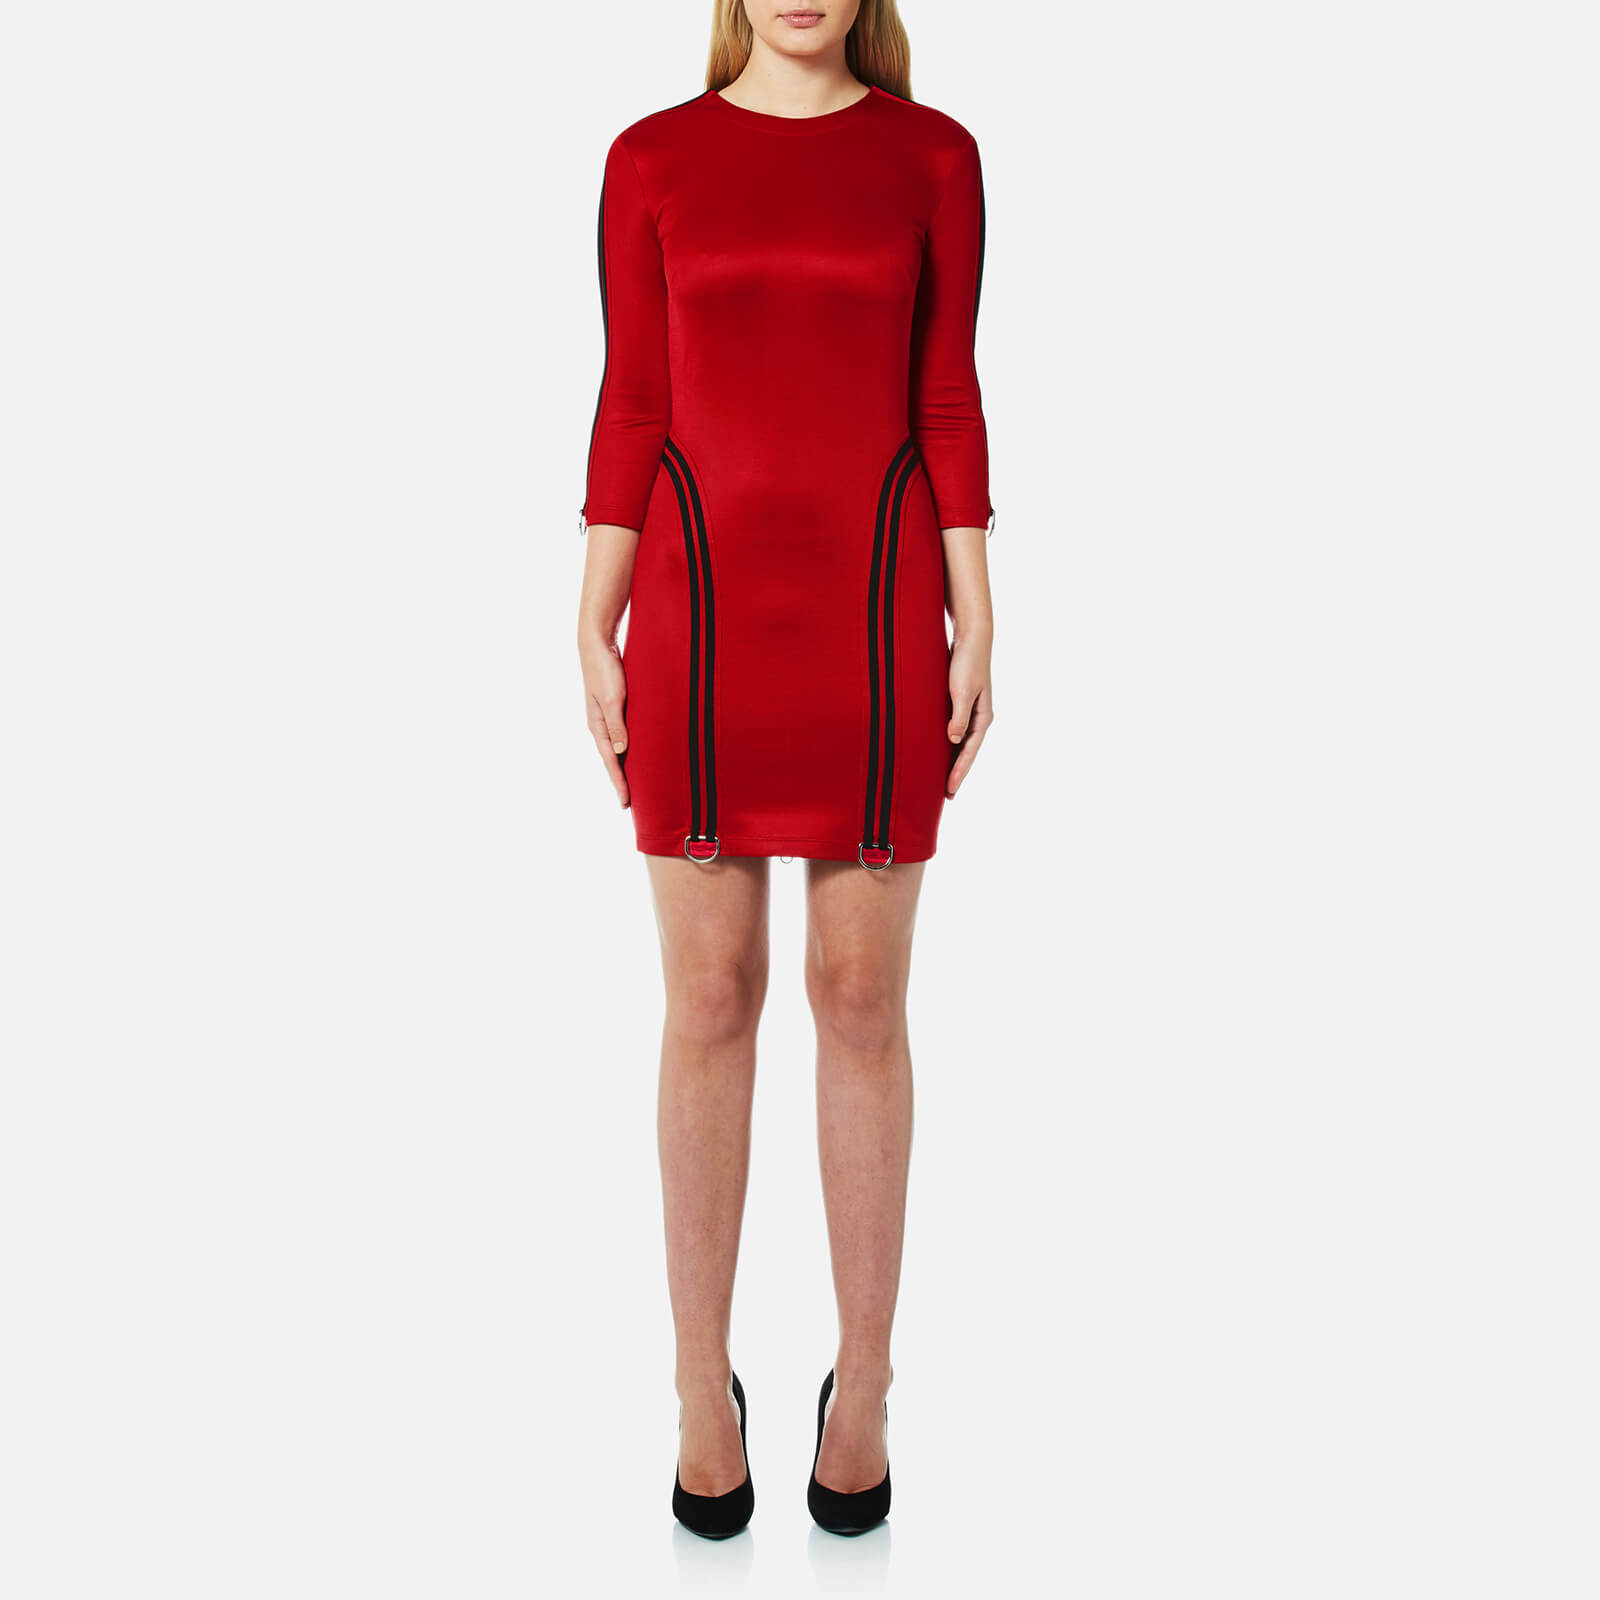 a72958a8c6 Versus Versace Women's Long Sleeve Sporty Dress with Zip Back - Red